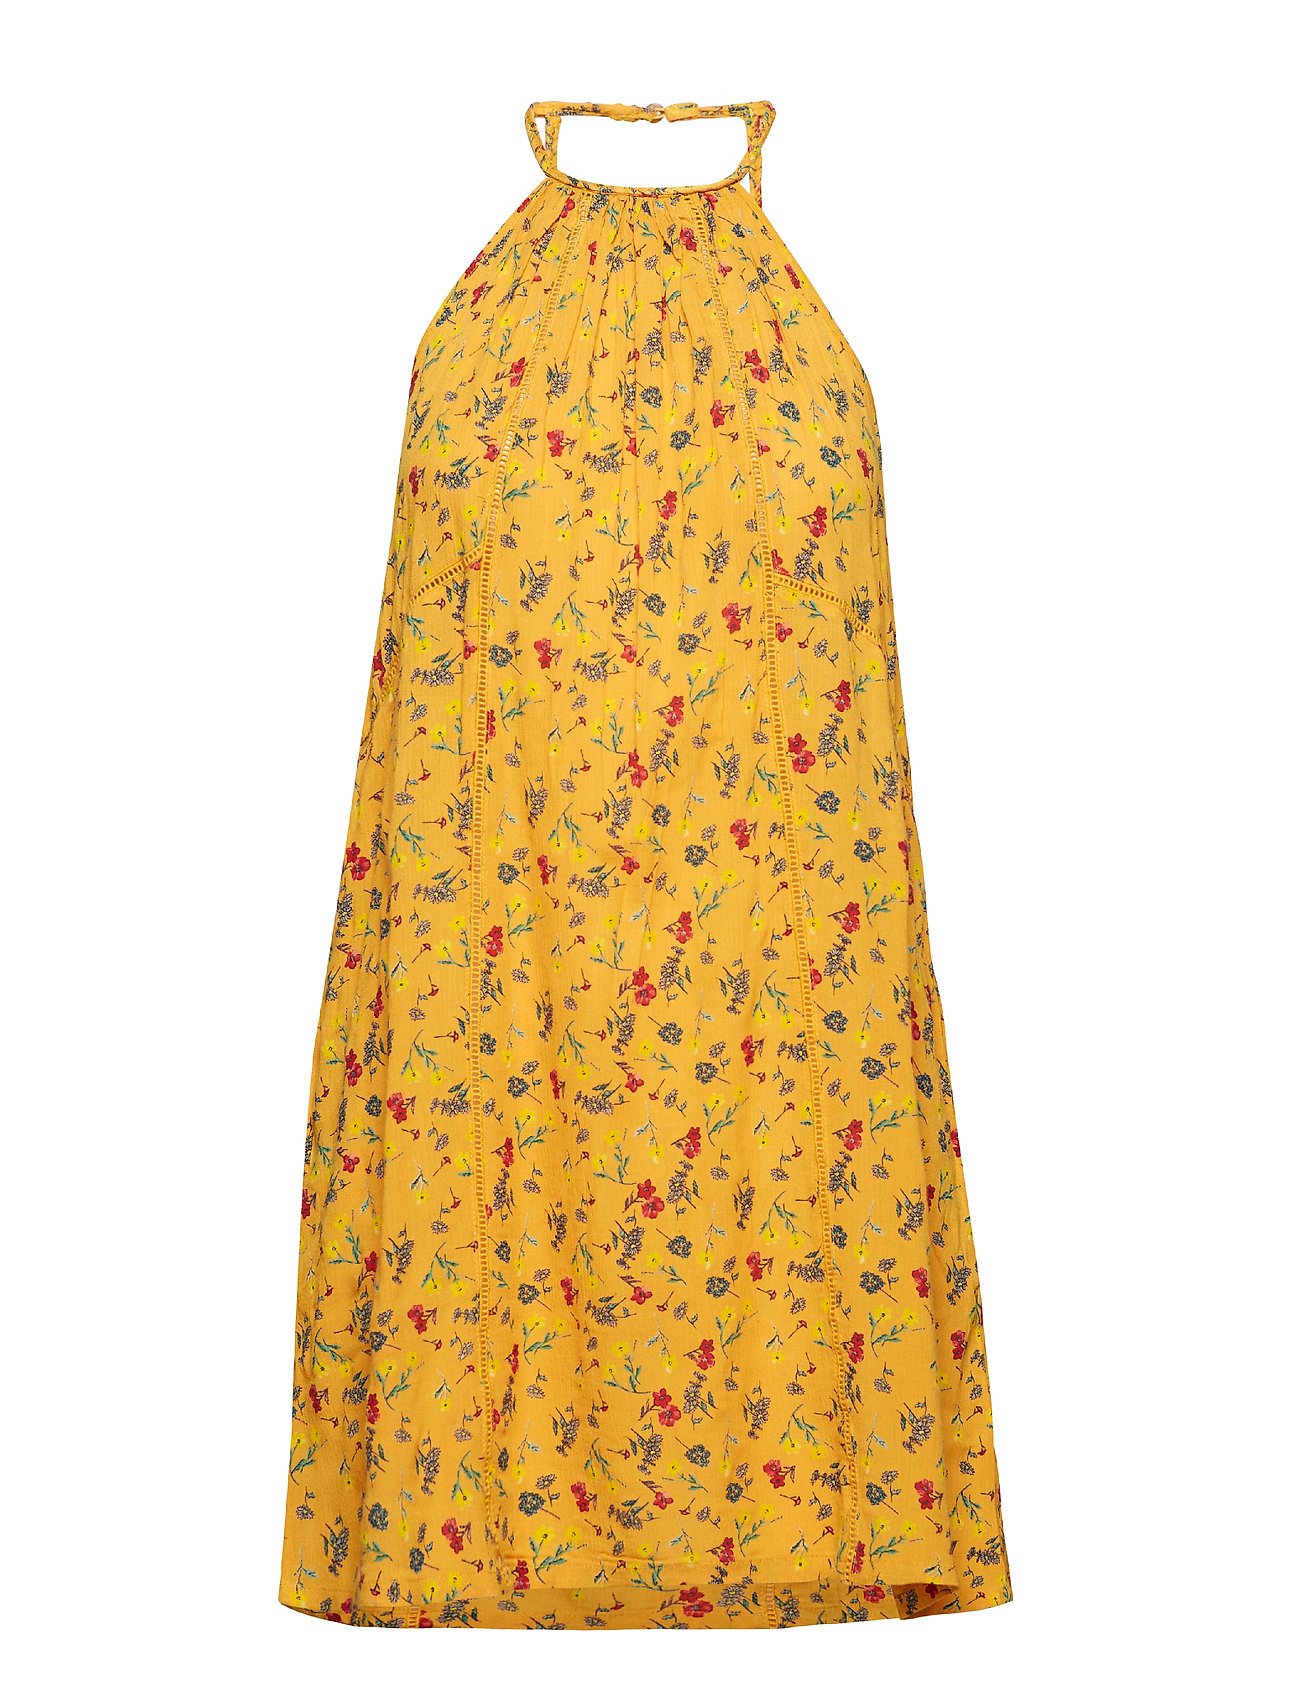 4fdeaced0b44f Riley Lace Halter Dress (Buttercup) (41.24 €) - Superdry - | Boozt.com